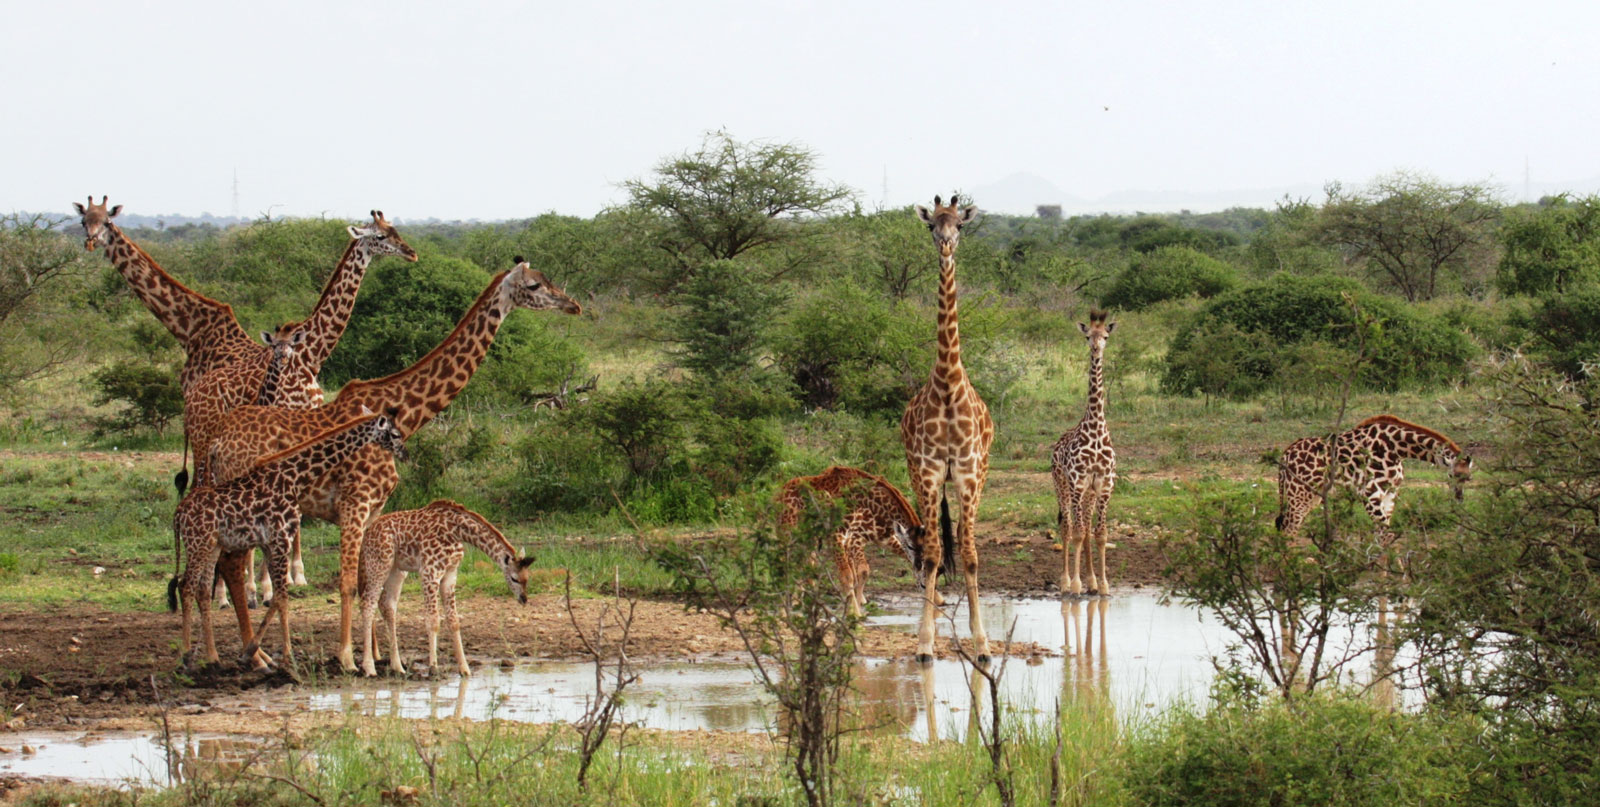 Giraffes at watering hole